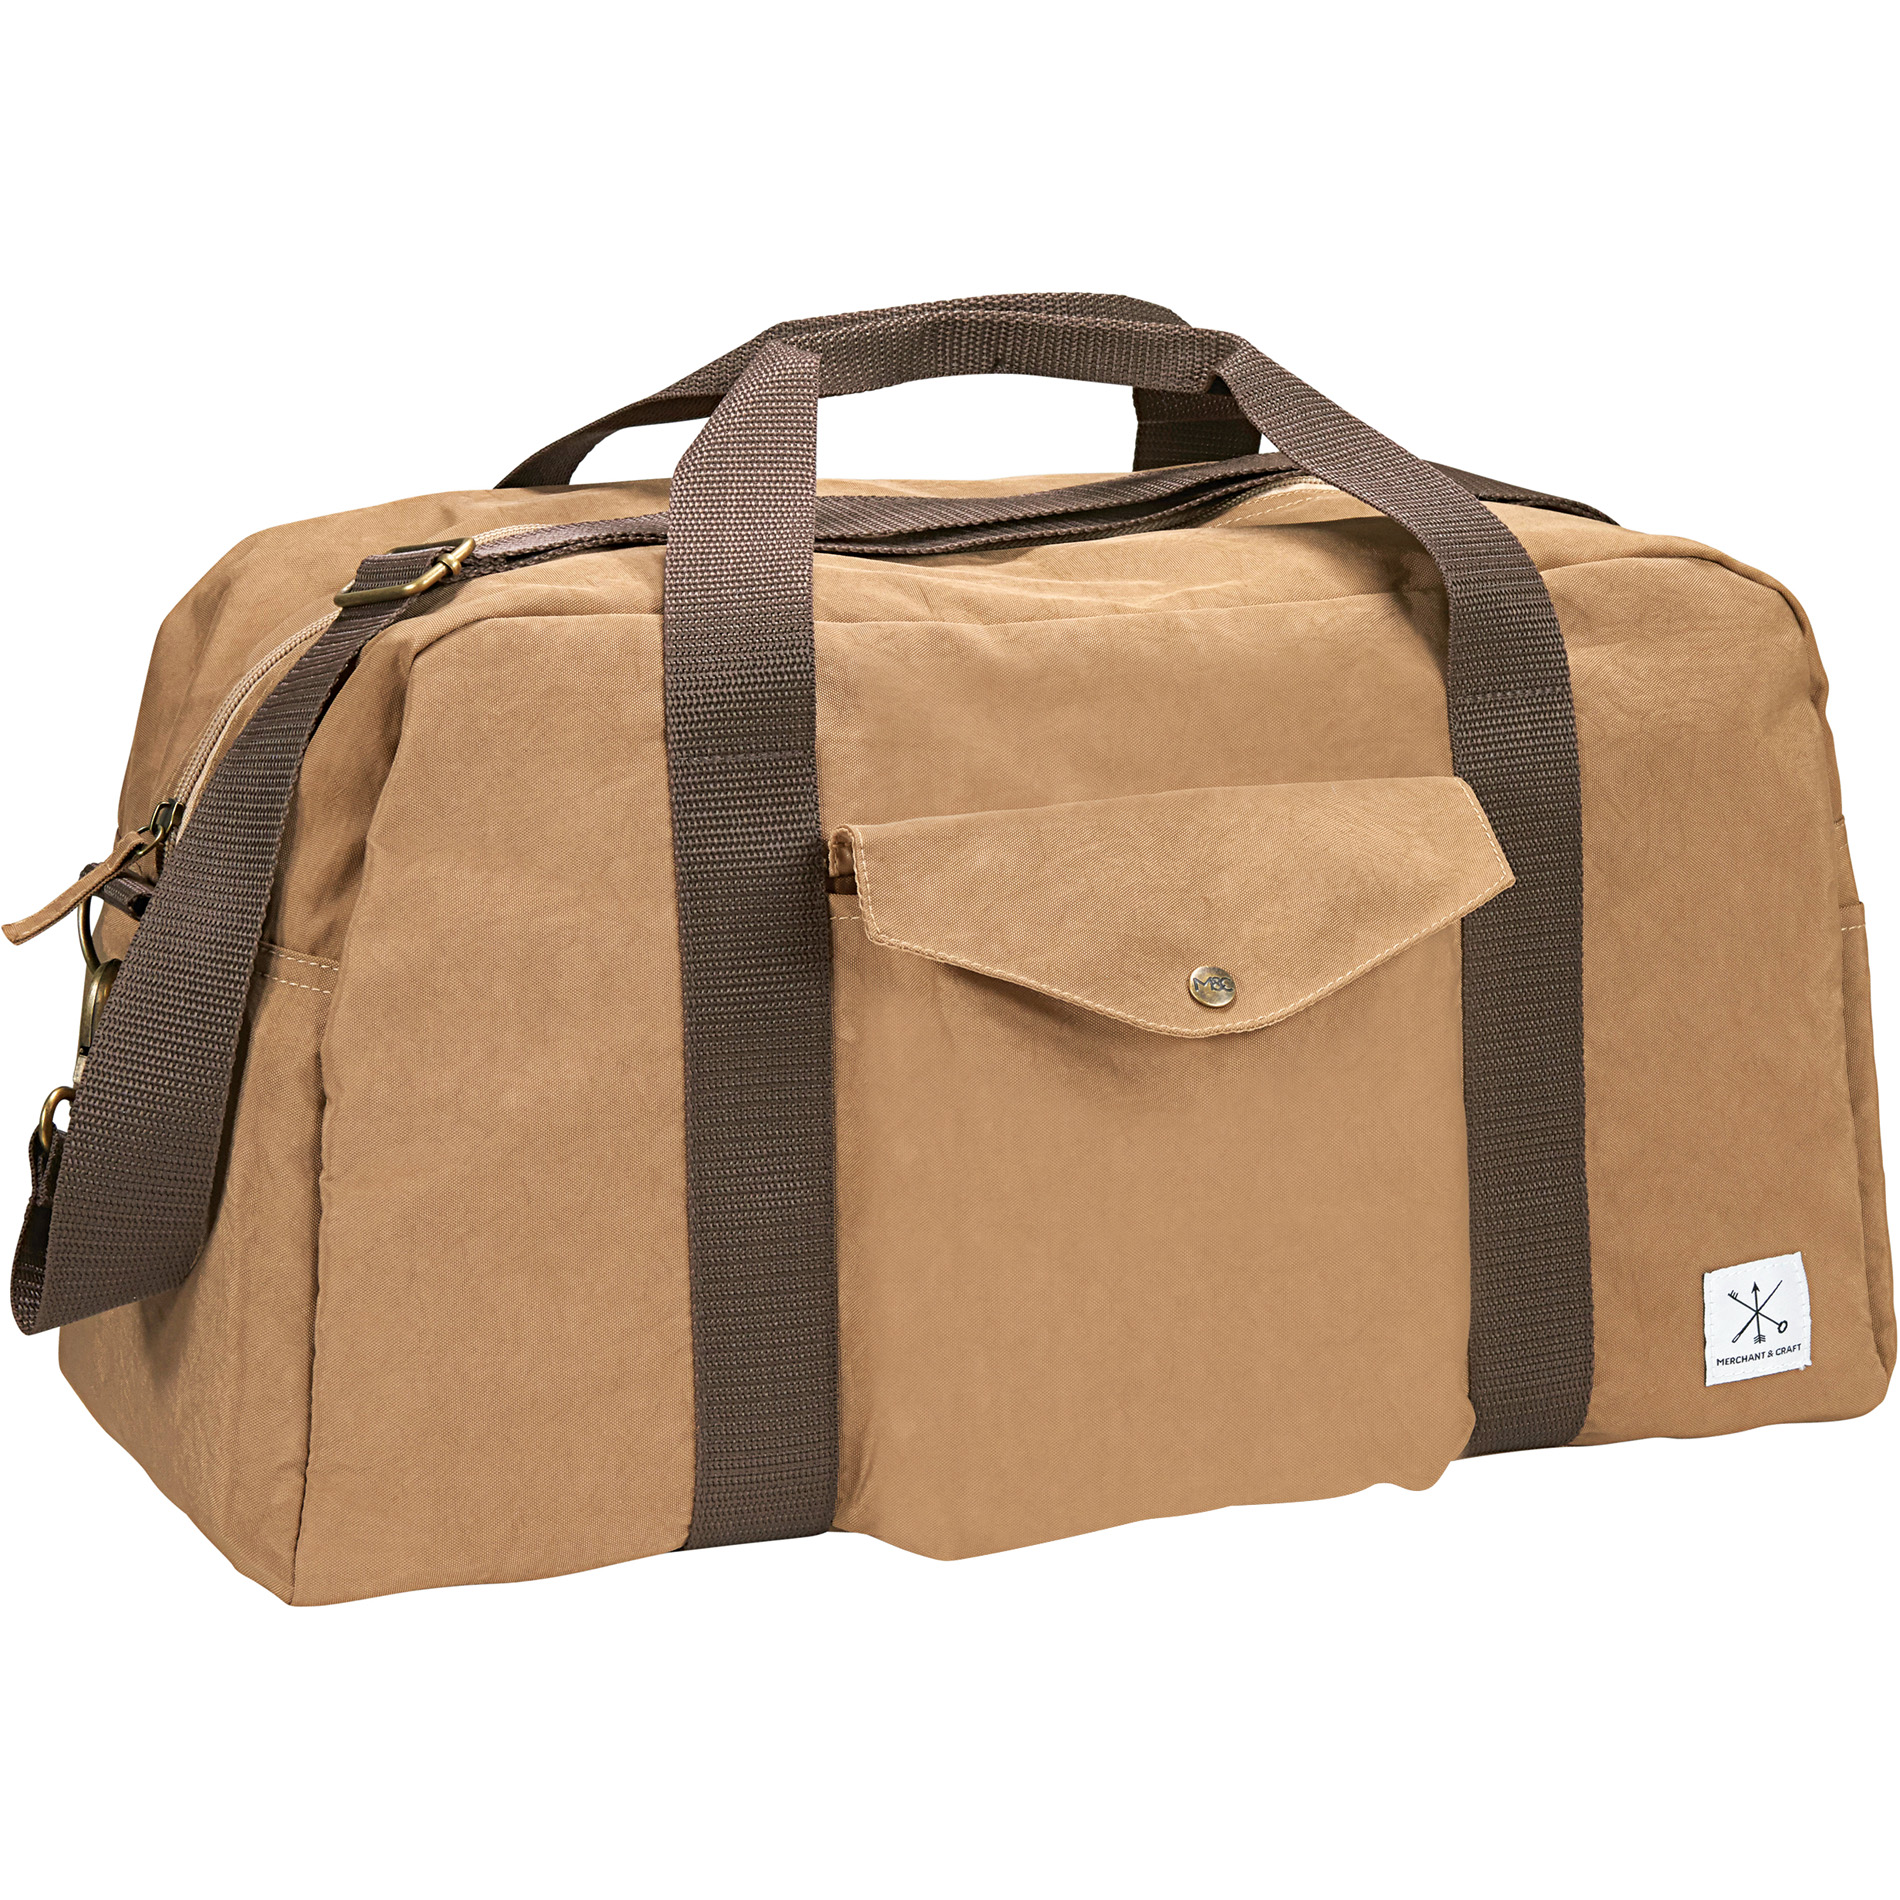 "Merchant & Craft 3750-30 - Sawyer 18"" Duffel"